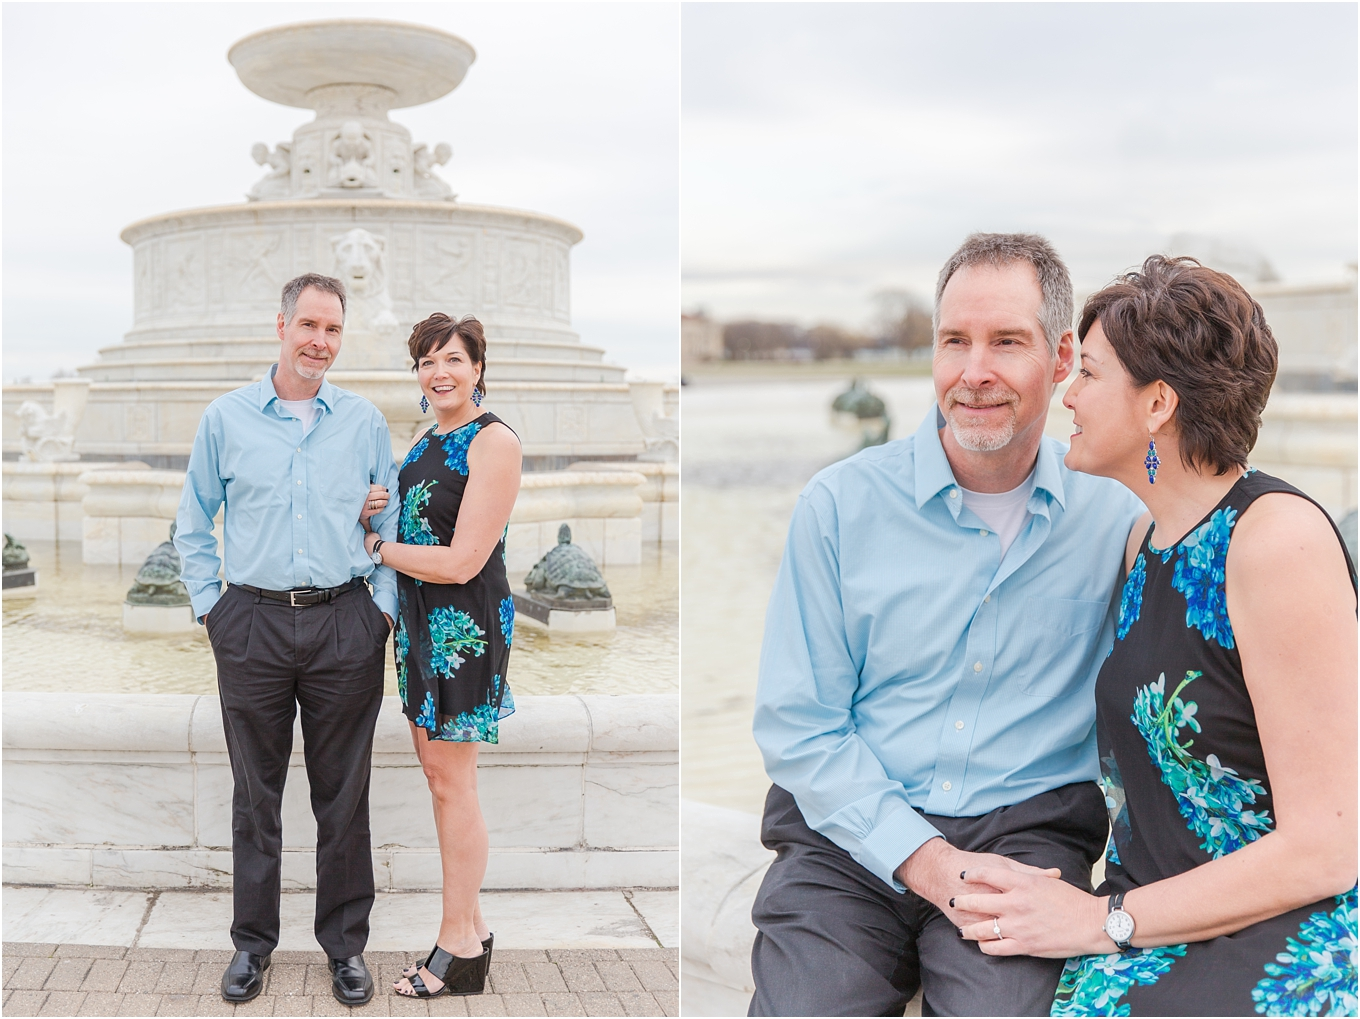 downtown-detroit-engagement-photos-on-belle-isle-by-courtney-carolyn-photography_0015.jpg